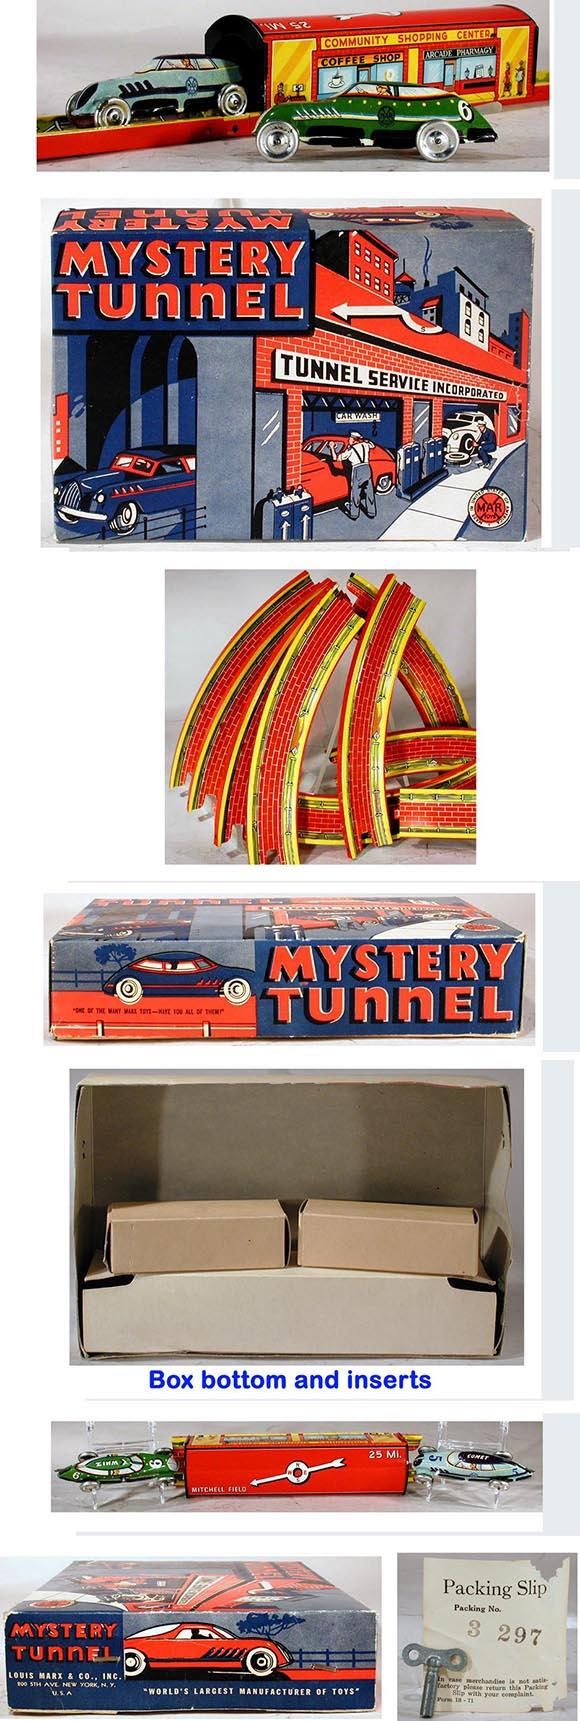 c.1949 Marx, 12pc. Mystery Tunnel in Original Box #2